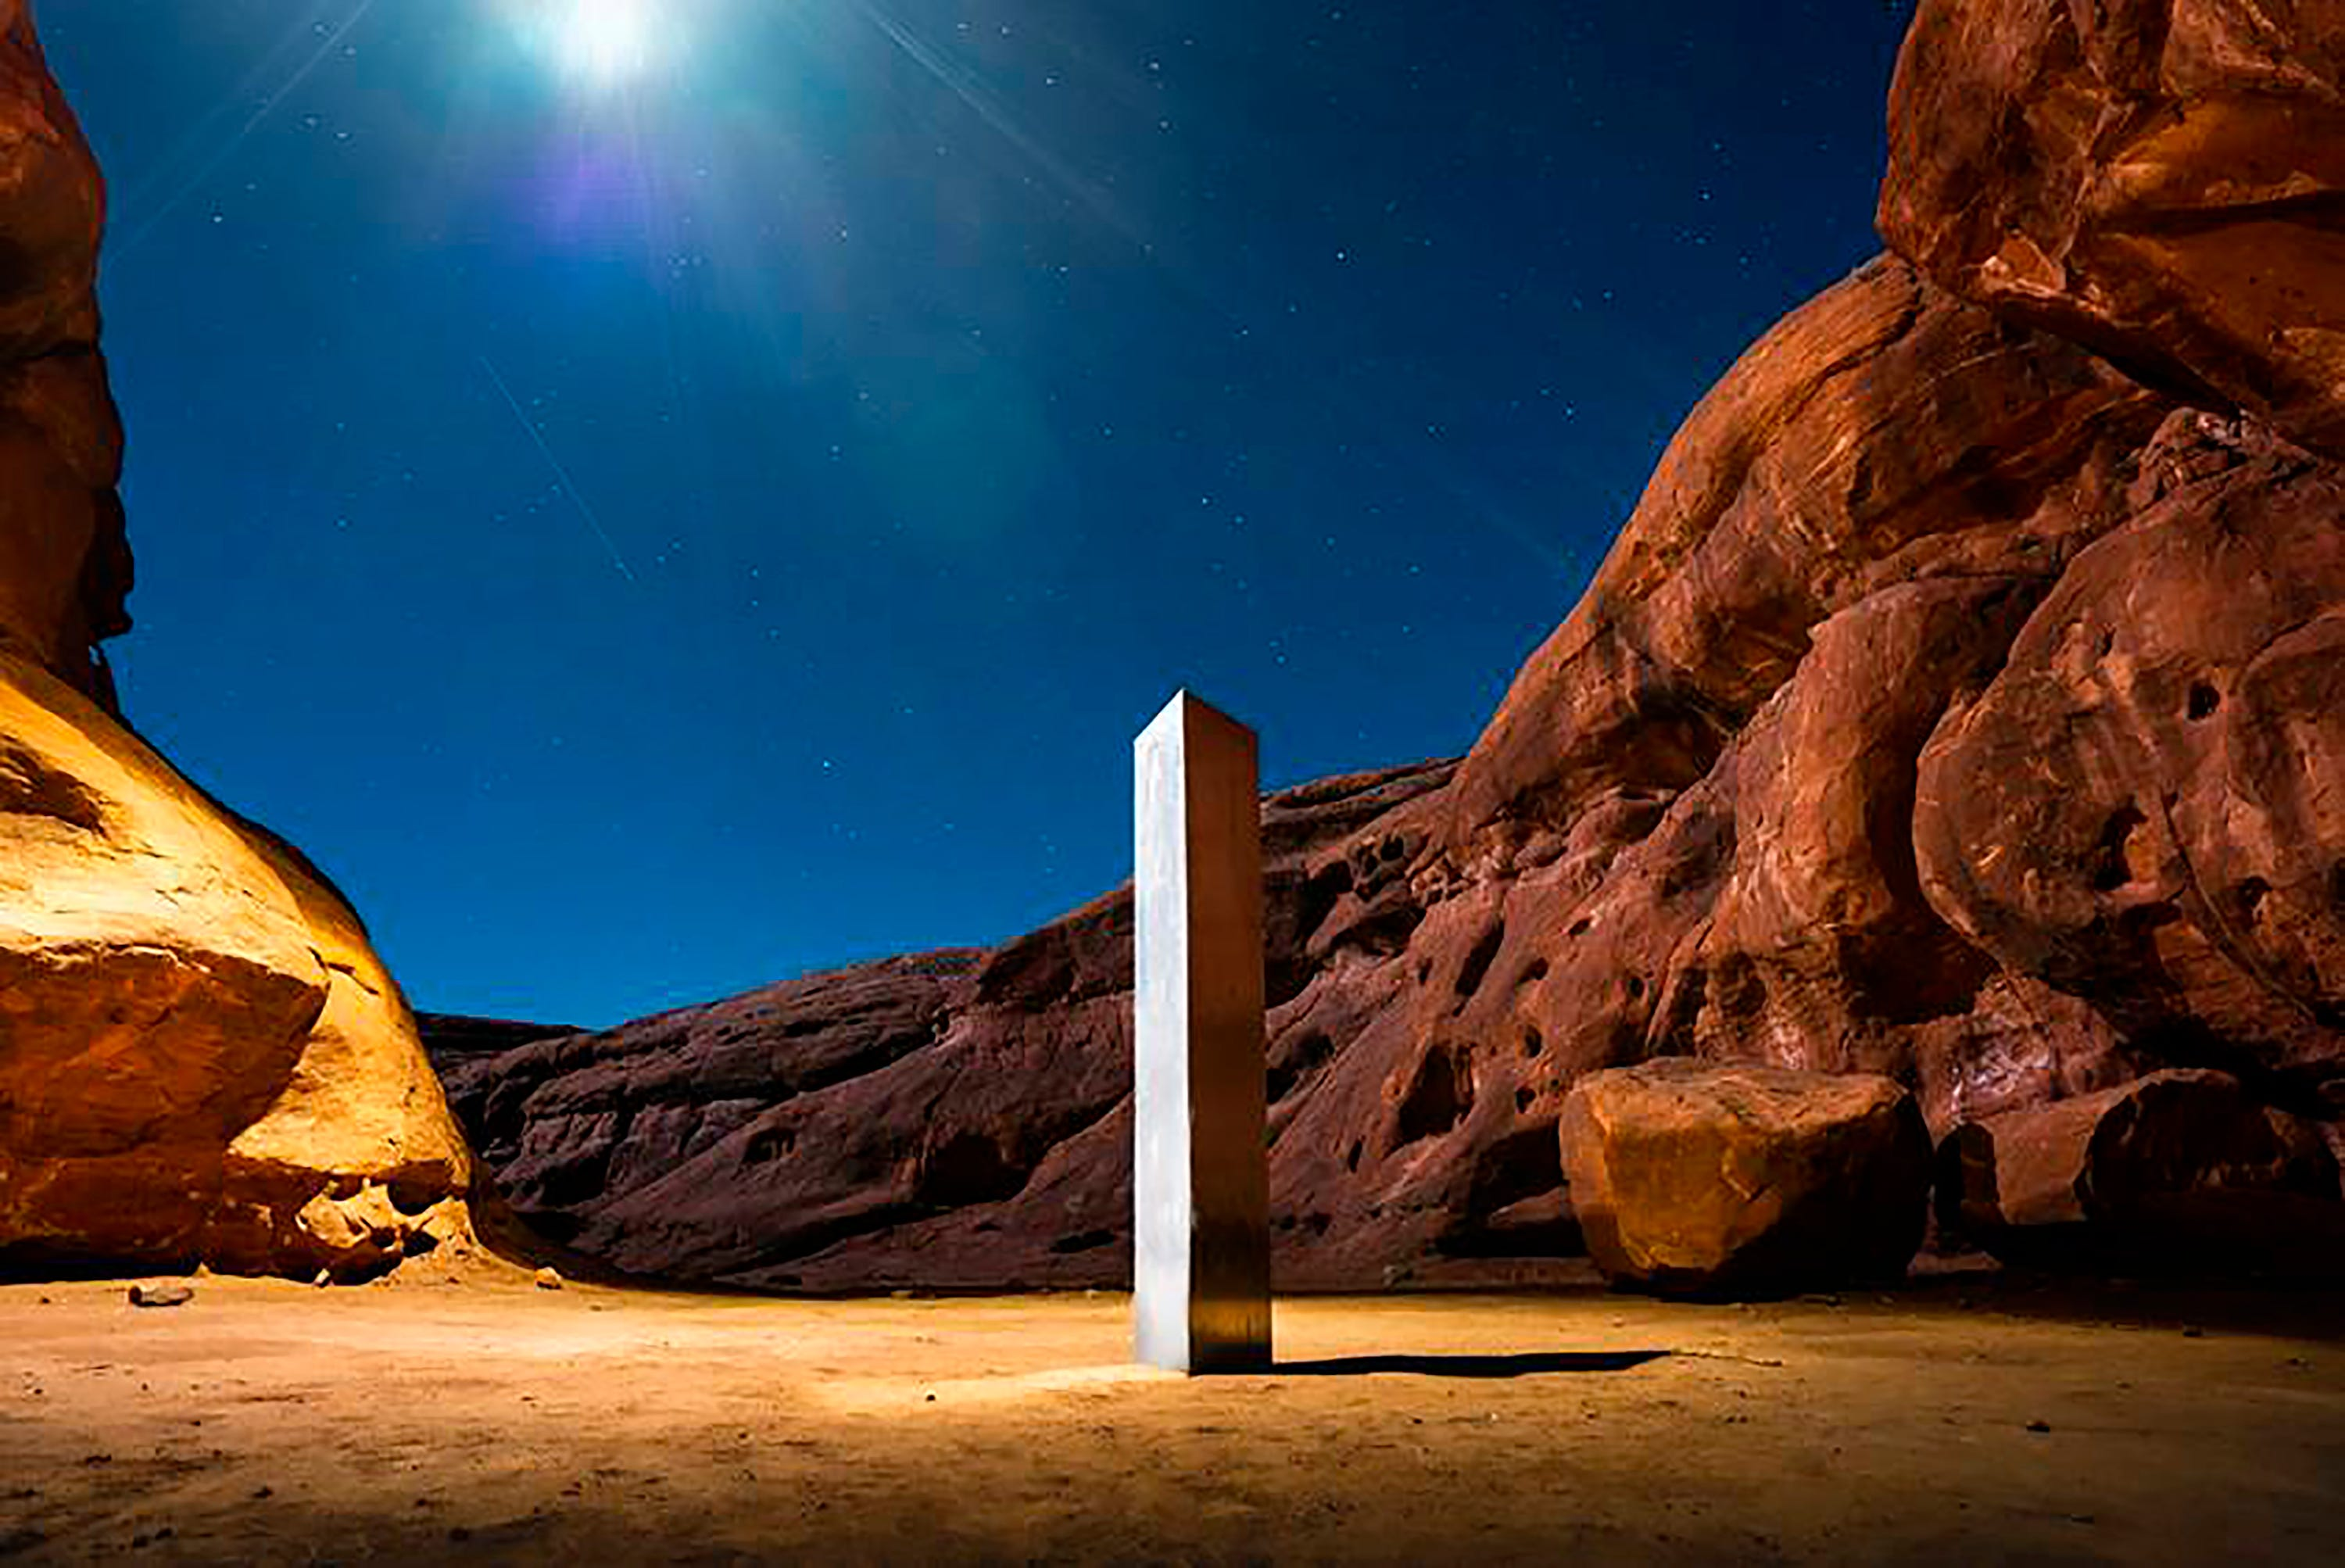 Tracking all the monoliths that have appeared (and disappeared) around the world